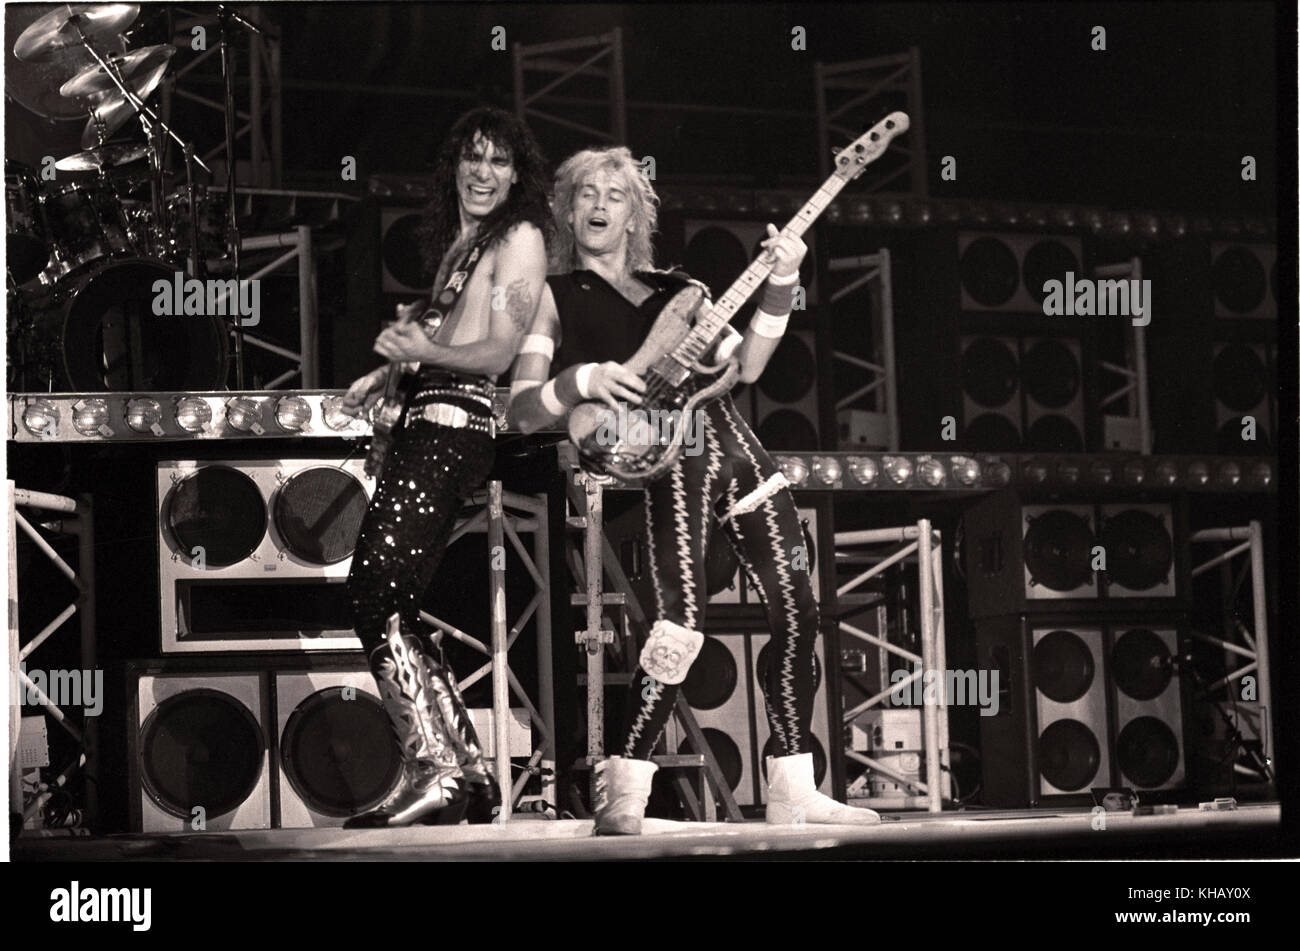 David Lee Roth Band High Resolution Stock Photography And Images Alamy